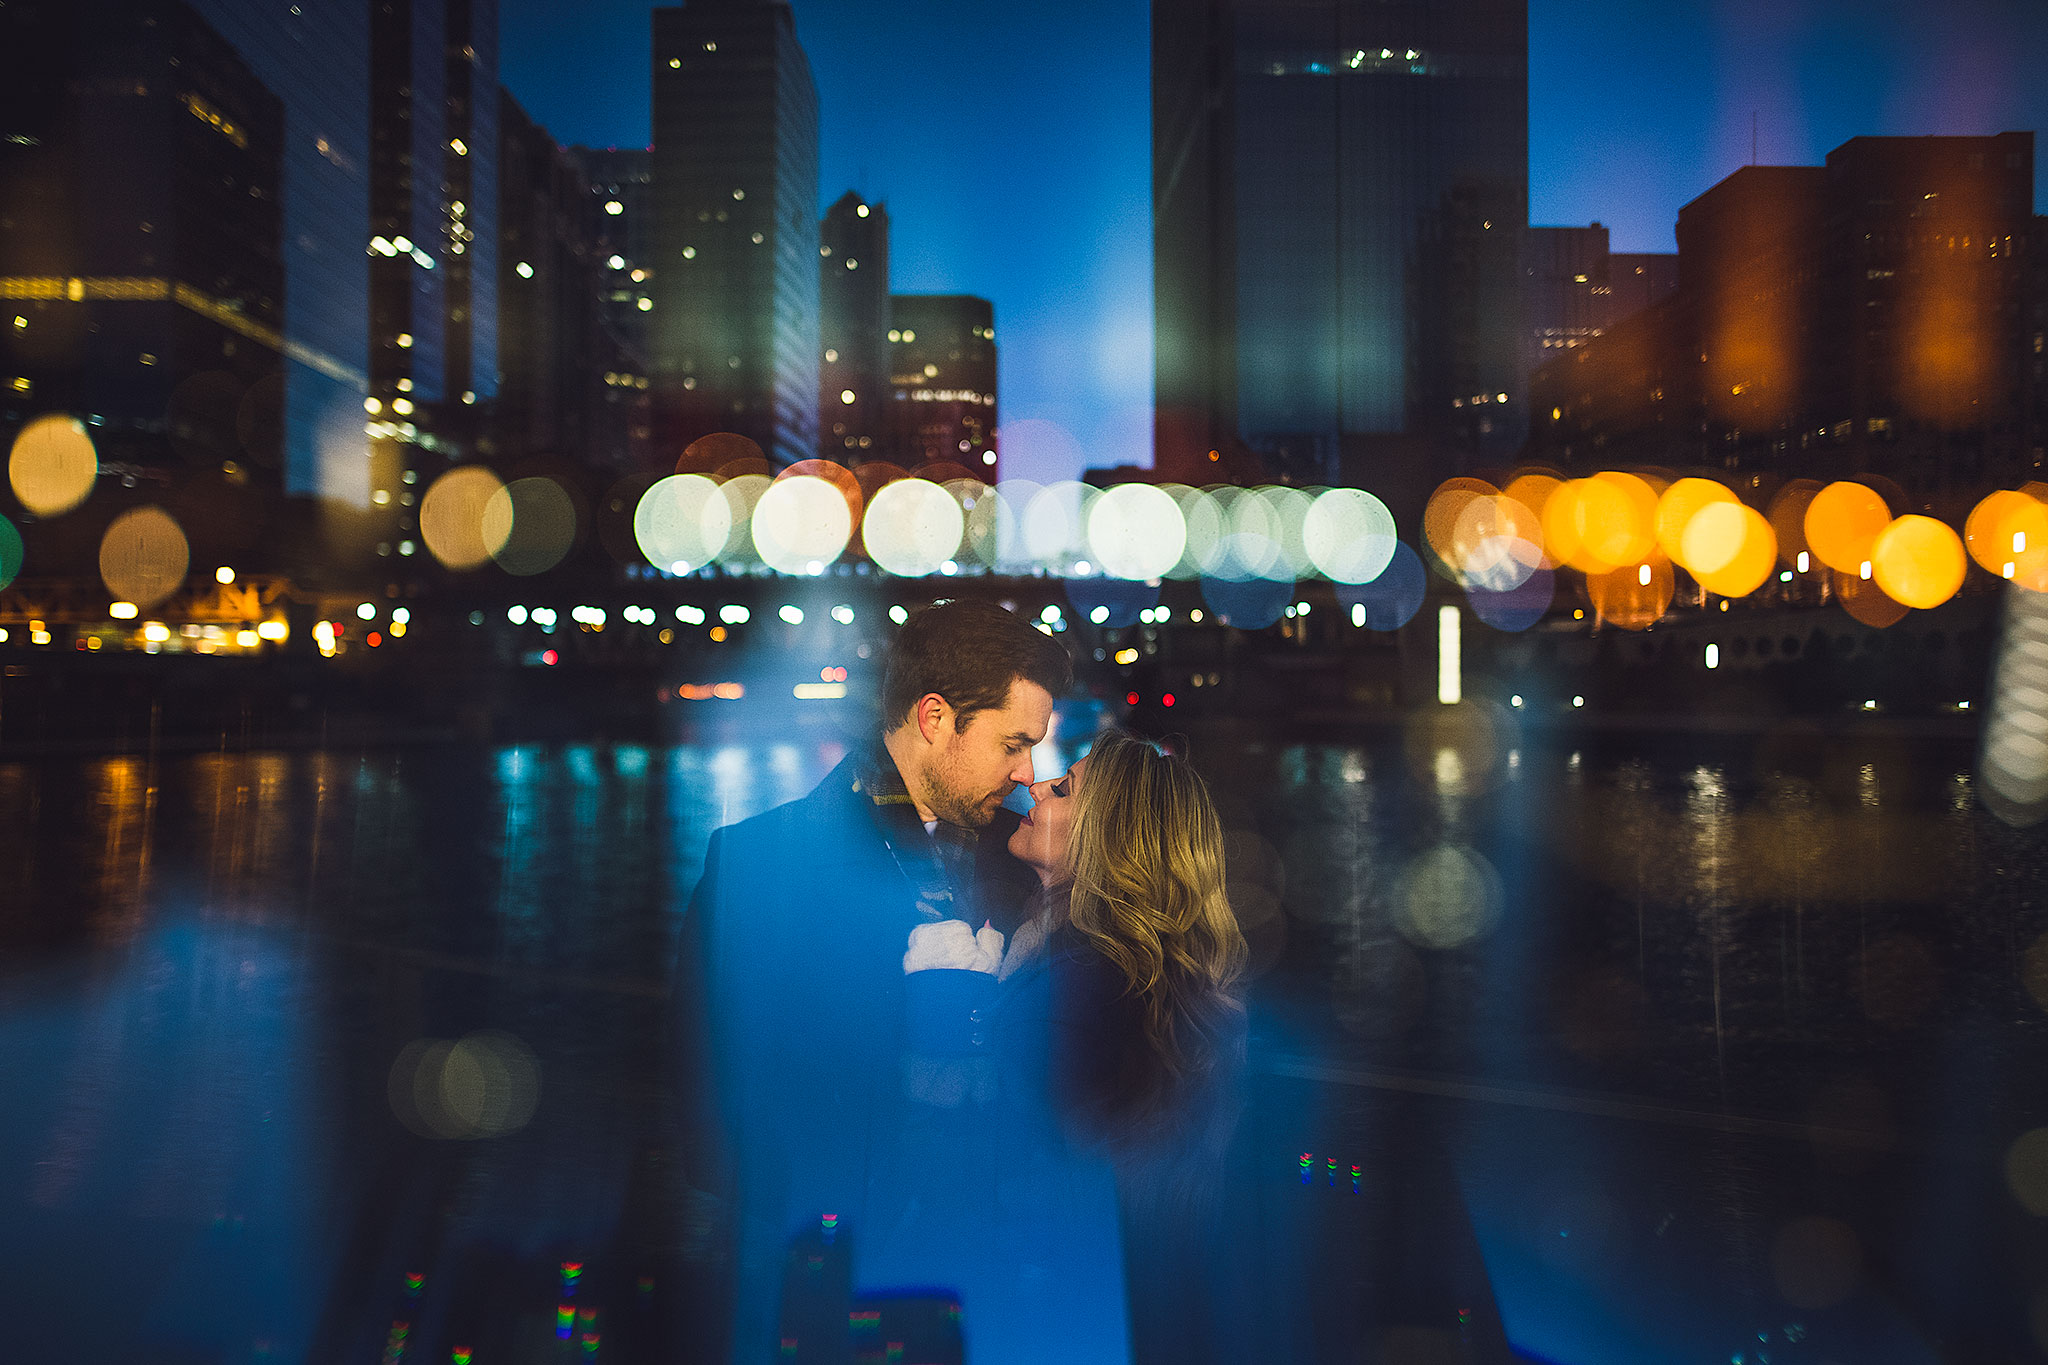 chicago-prism-double-exposure-engagement